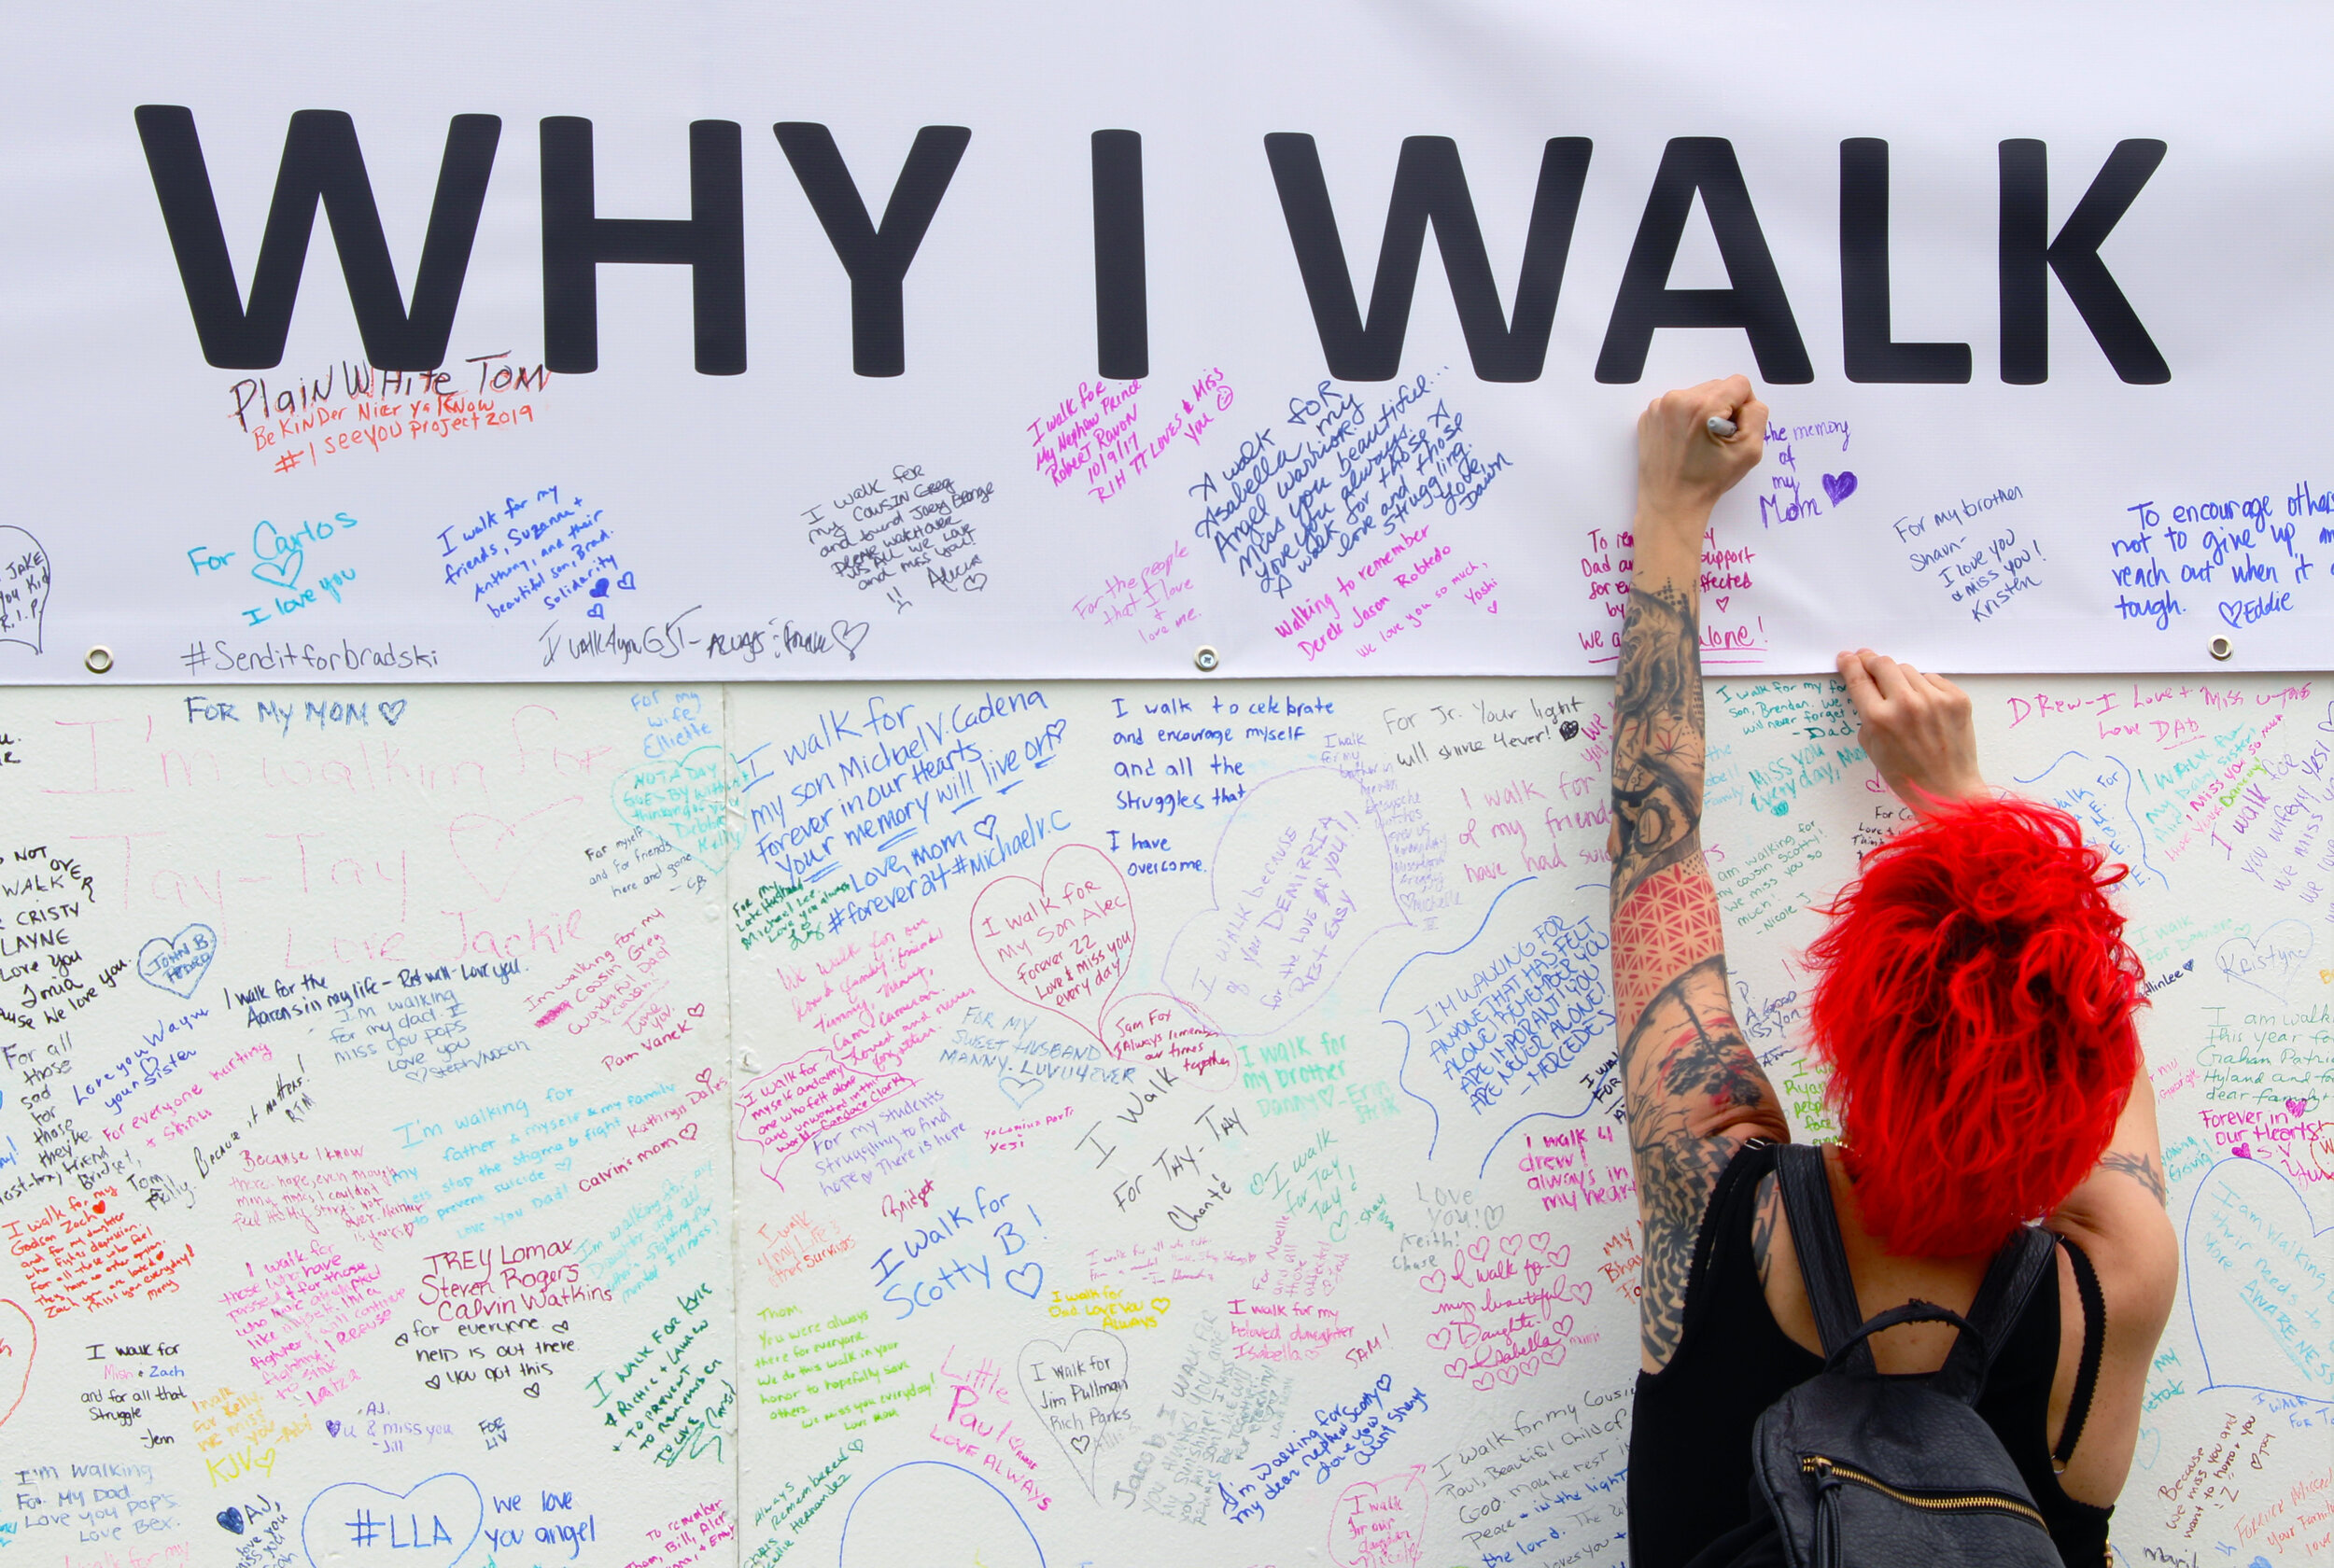 Participant writing a personal message on the  Why I Walk  wall.